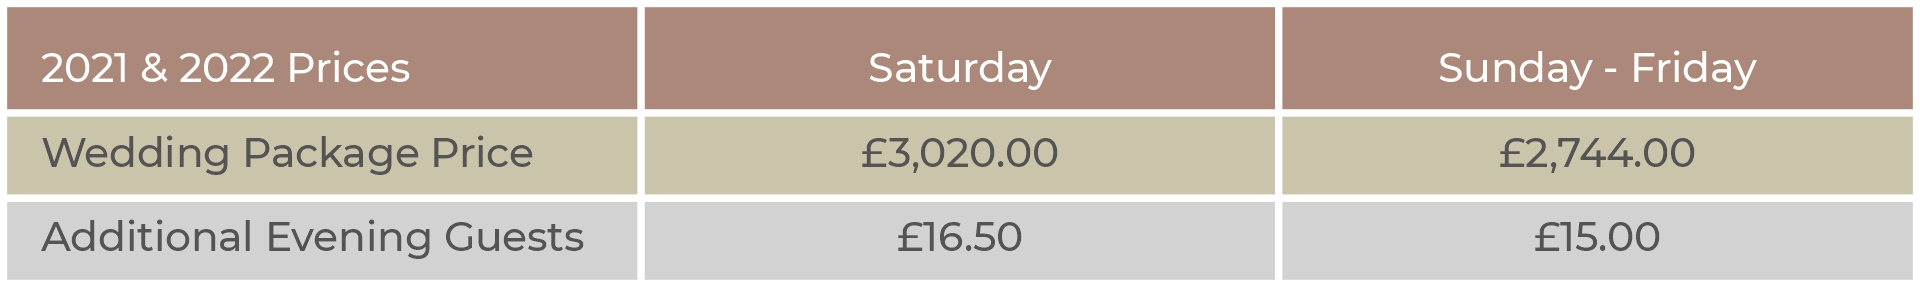 Evening Package Prices at The Old Rectory Handsworth